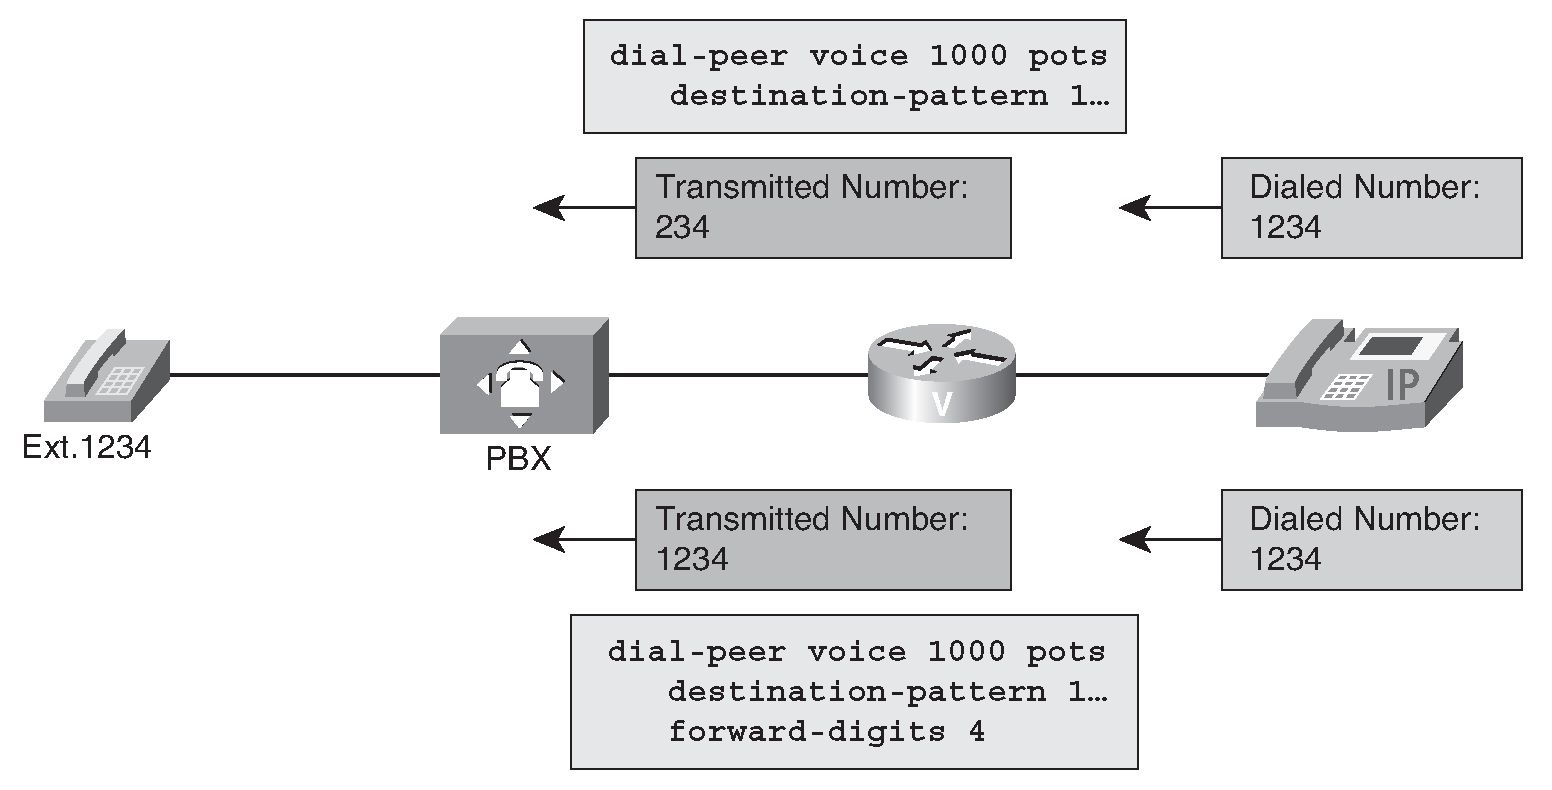 Configuring Digit Manipulation (Configuring Advanced Dial